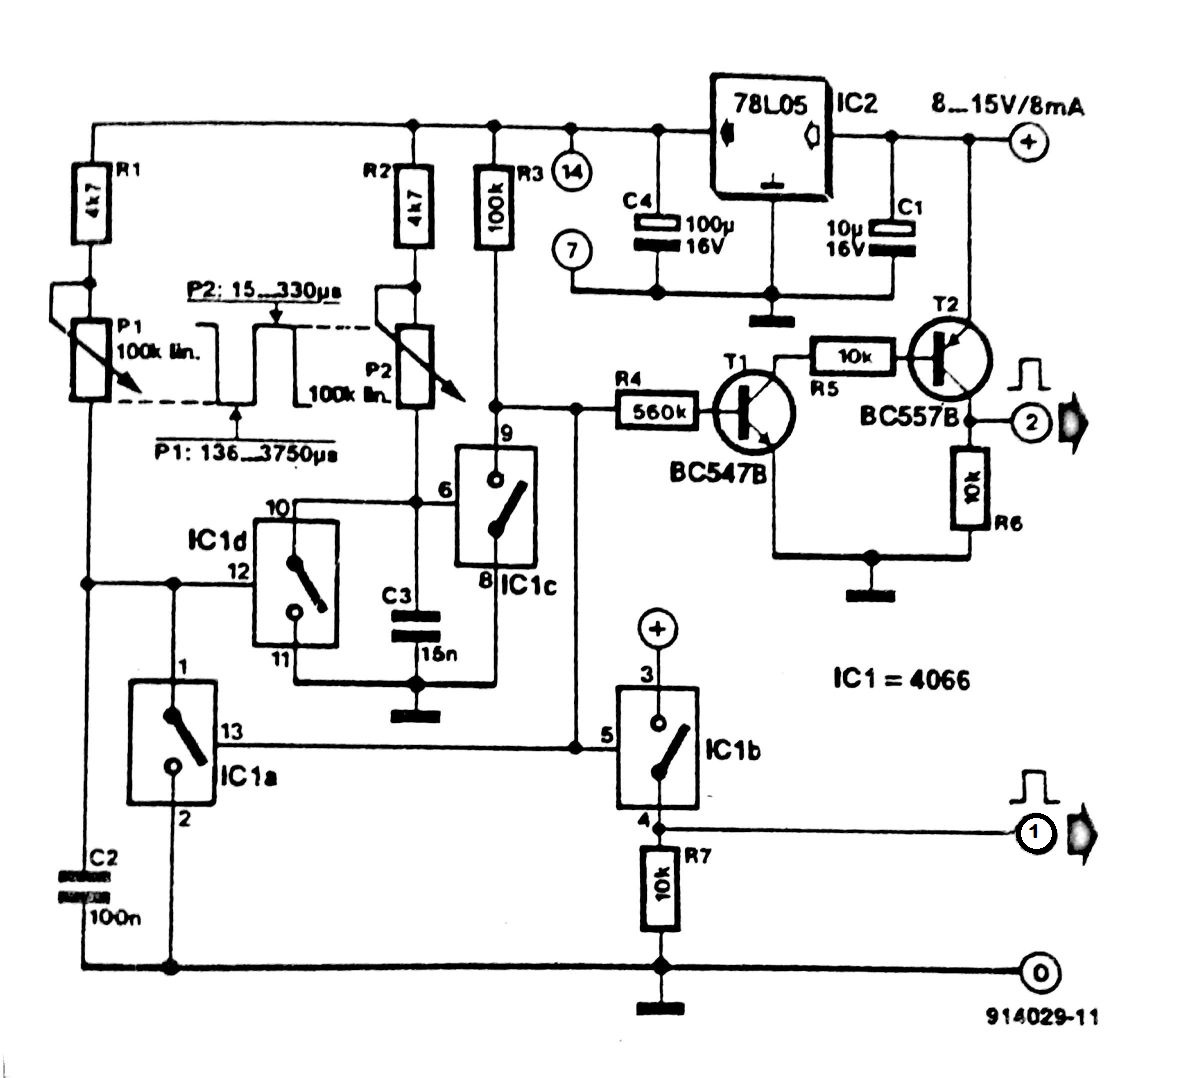 Pulse Generator with one 4066 Circuit Diagram generac panel ram wiring diagrams bolens wiring diagram, sears wiring diagram for little giant pump at edmiracle.co